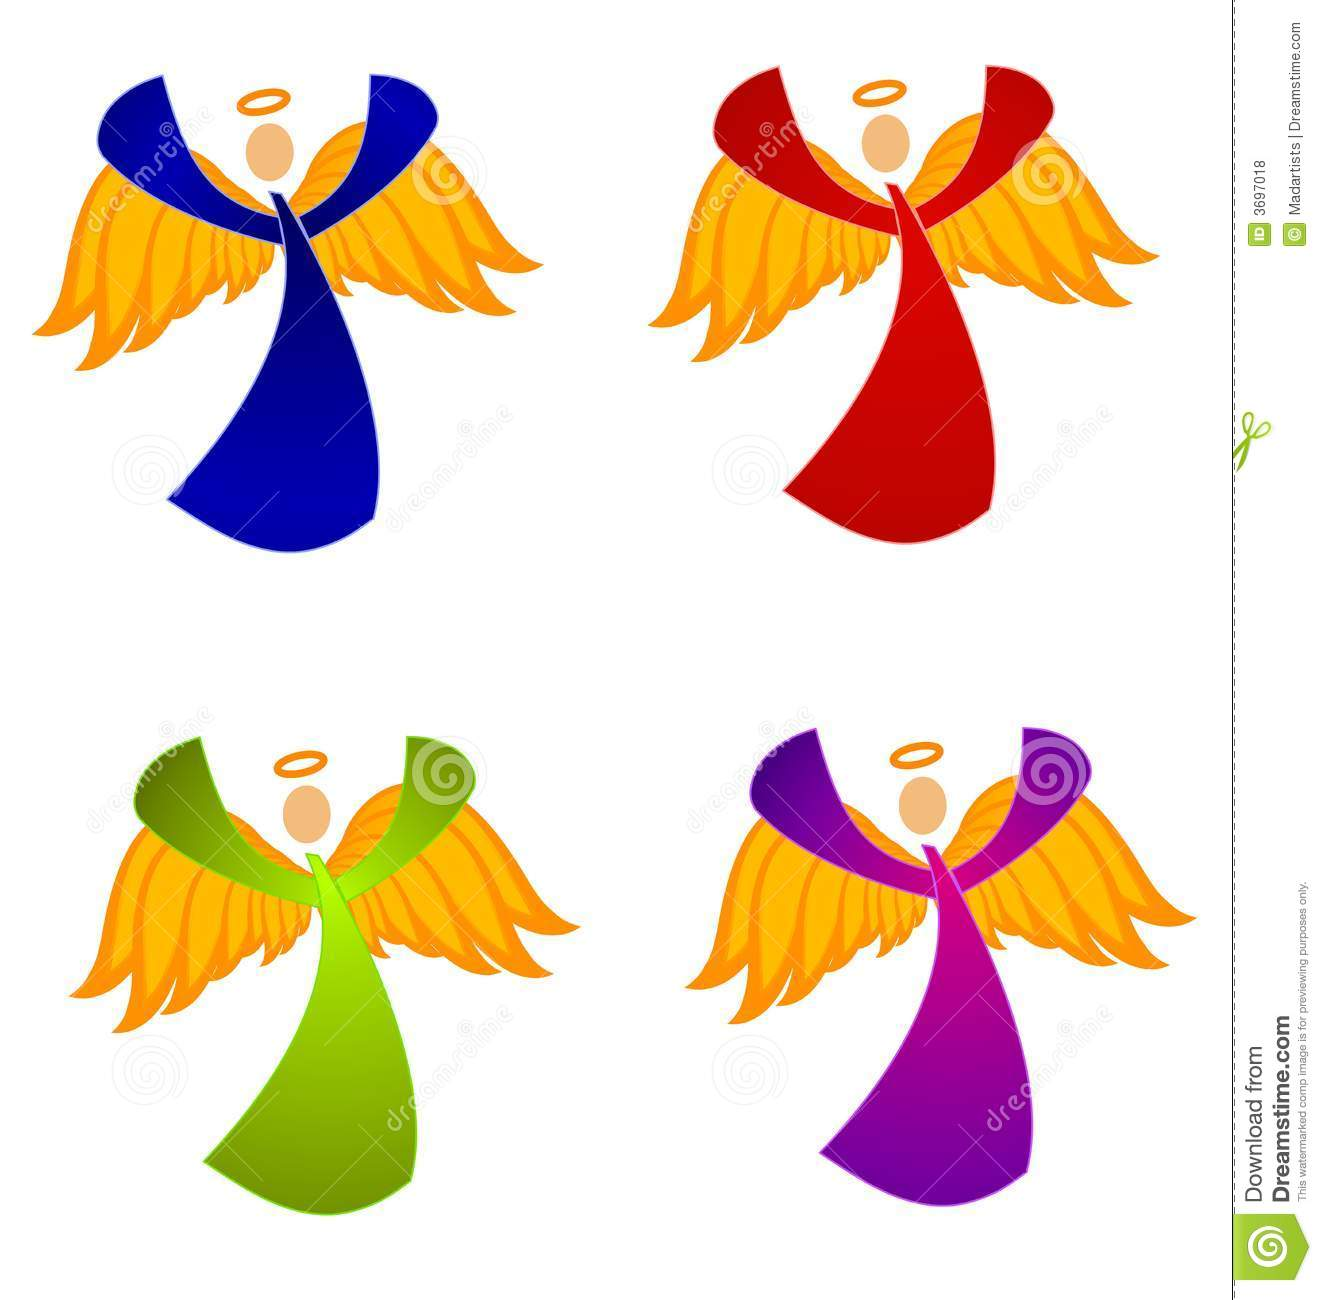 variety of christmas angels clip art stock illustration rh dreamstime com christmas angel clipart images christmas angel clip art images